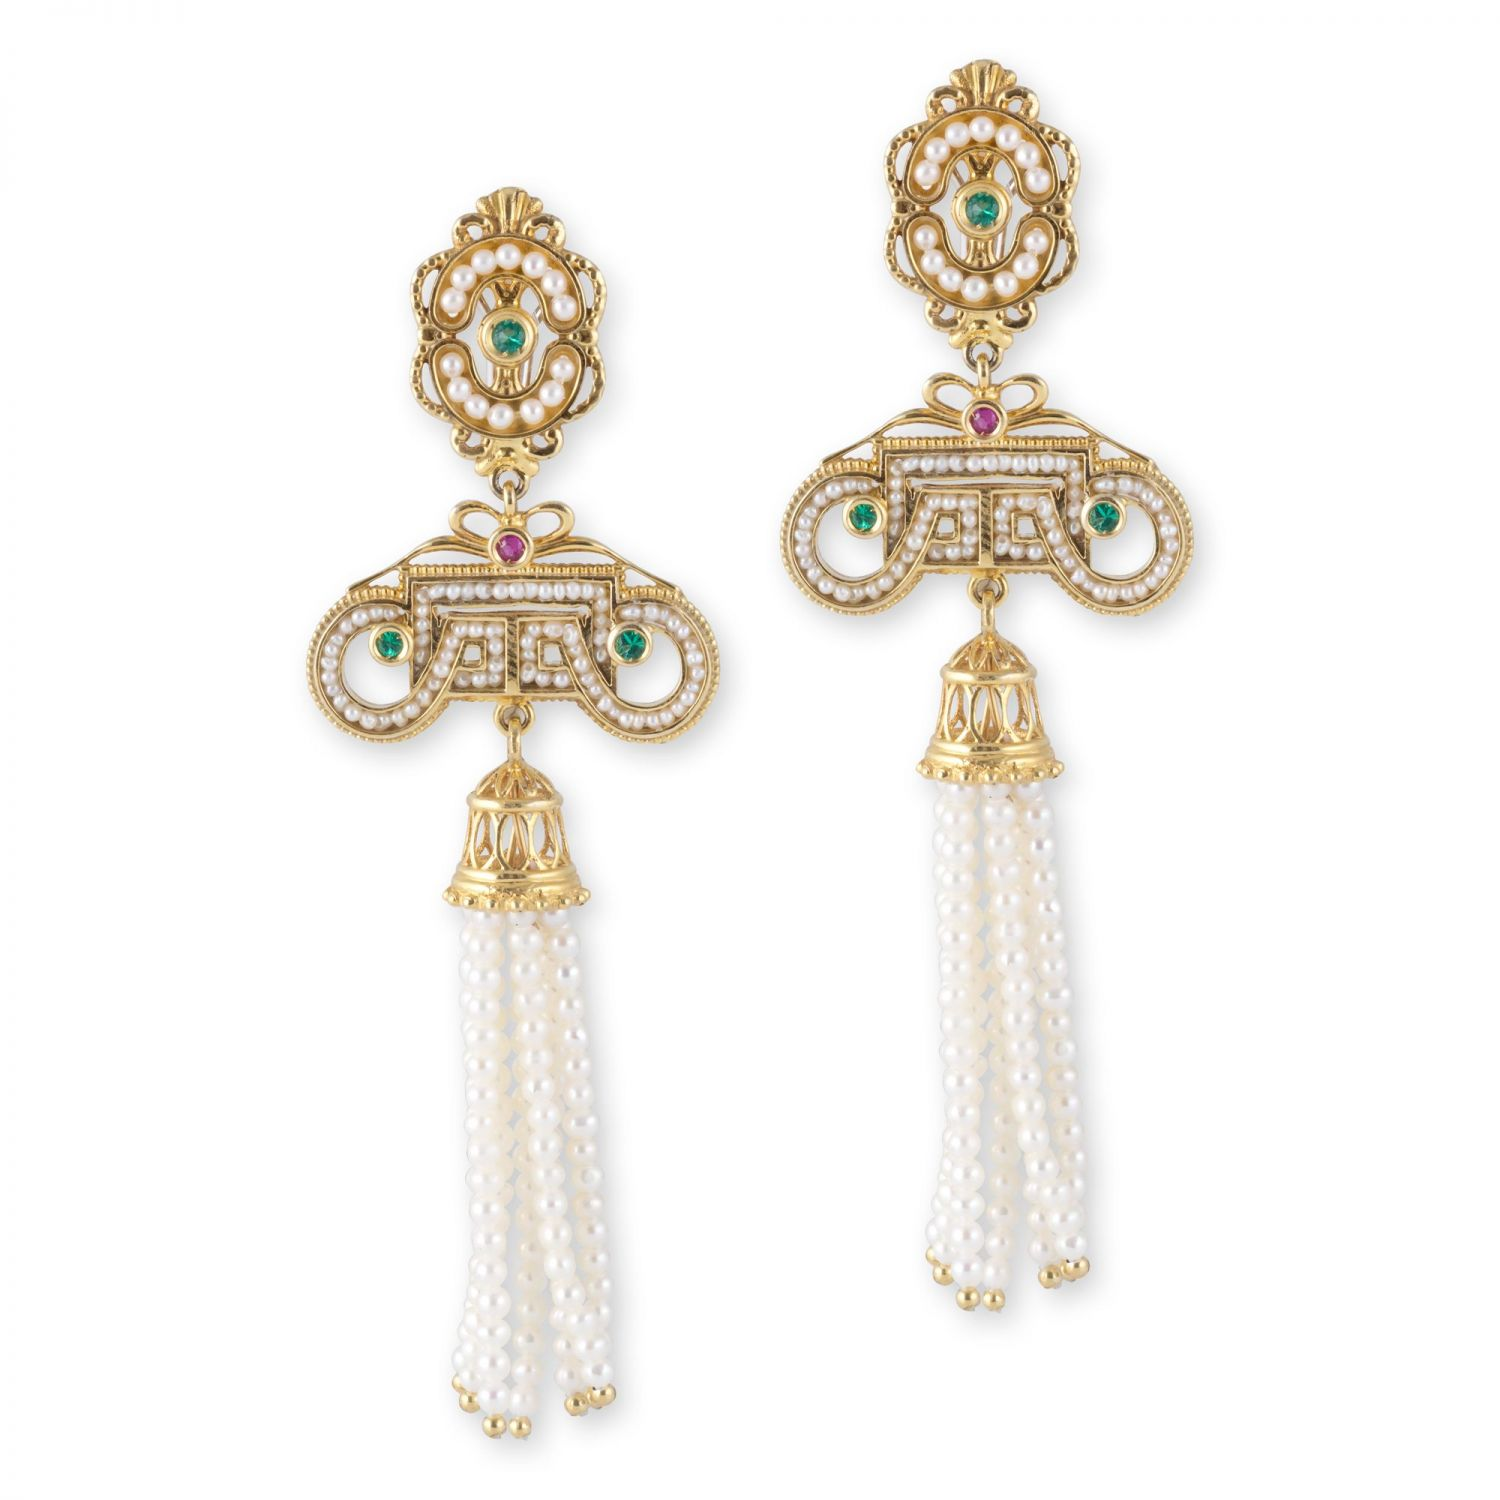 Gold pendant Earrings with Pearls and precious Stones (14265)